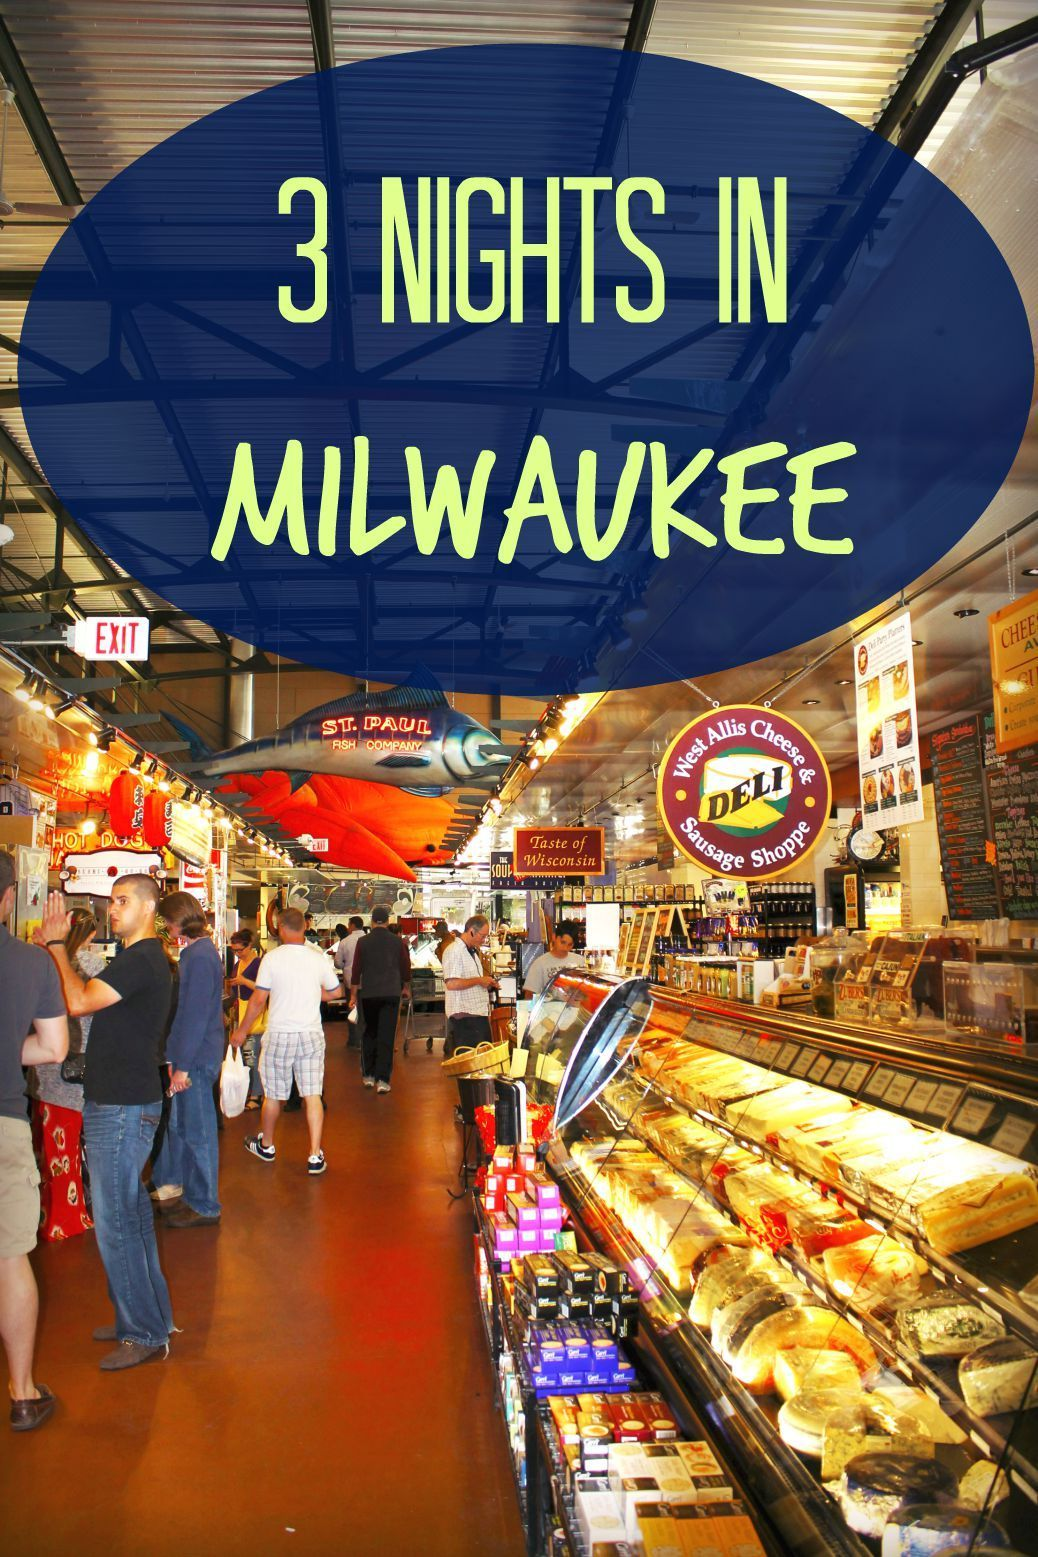 3 NIghts In Miluwakee, Wisconsin (With Images)